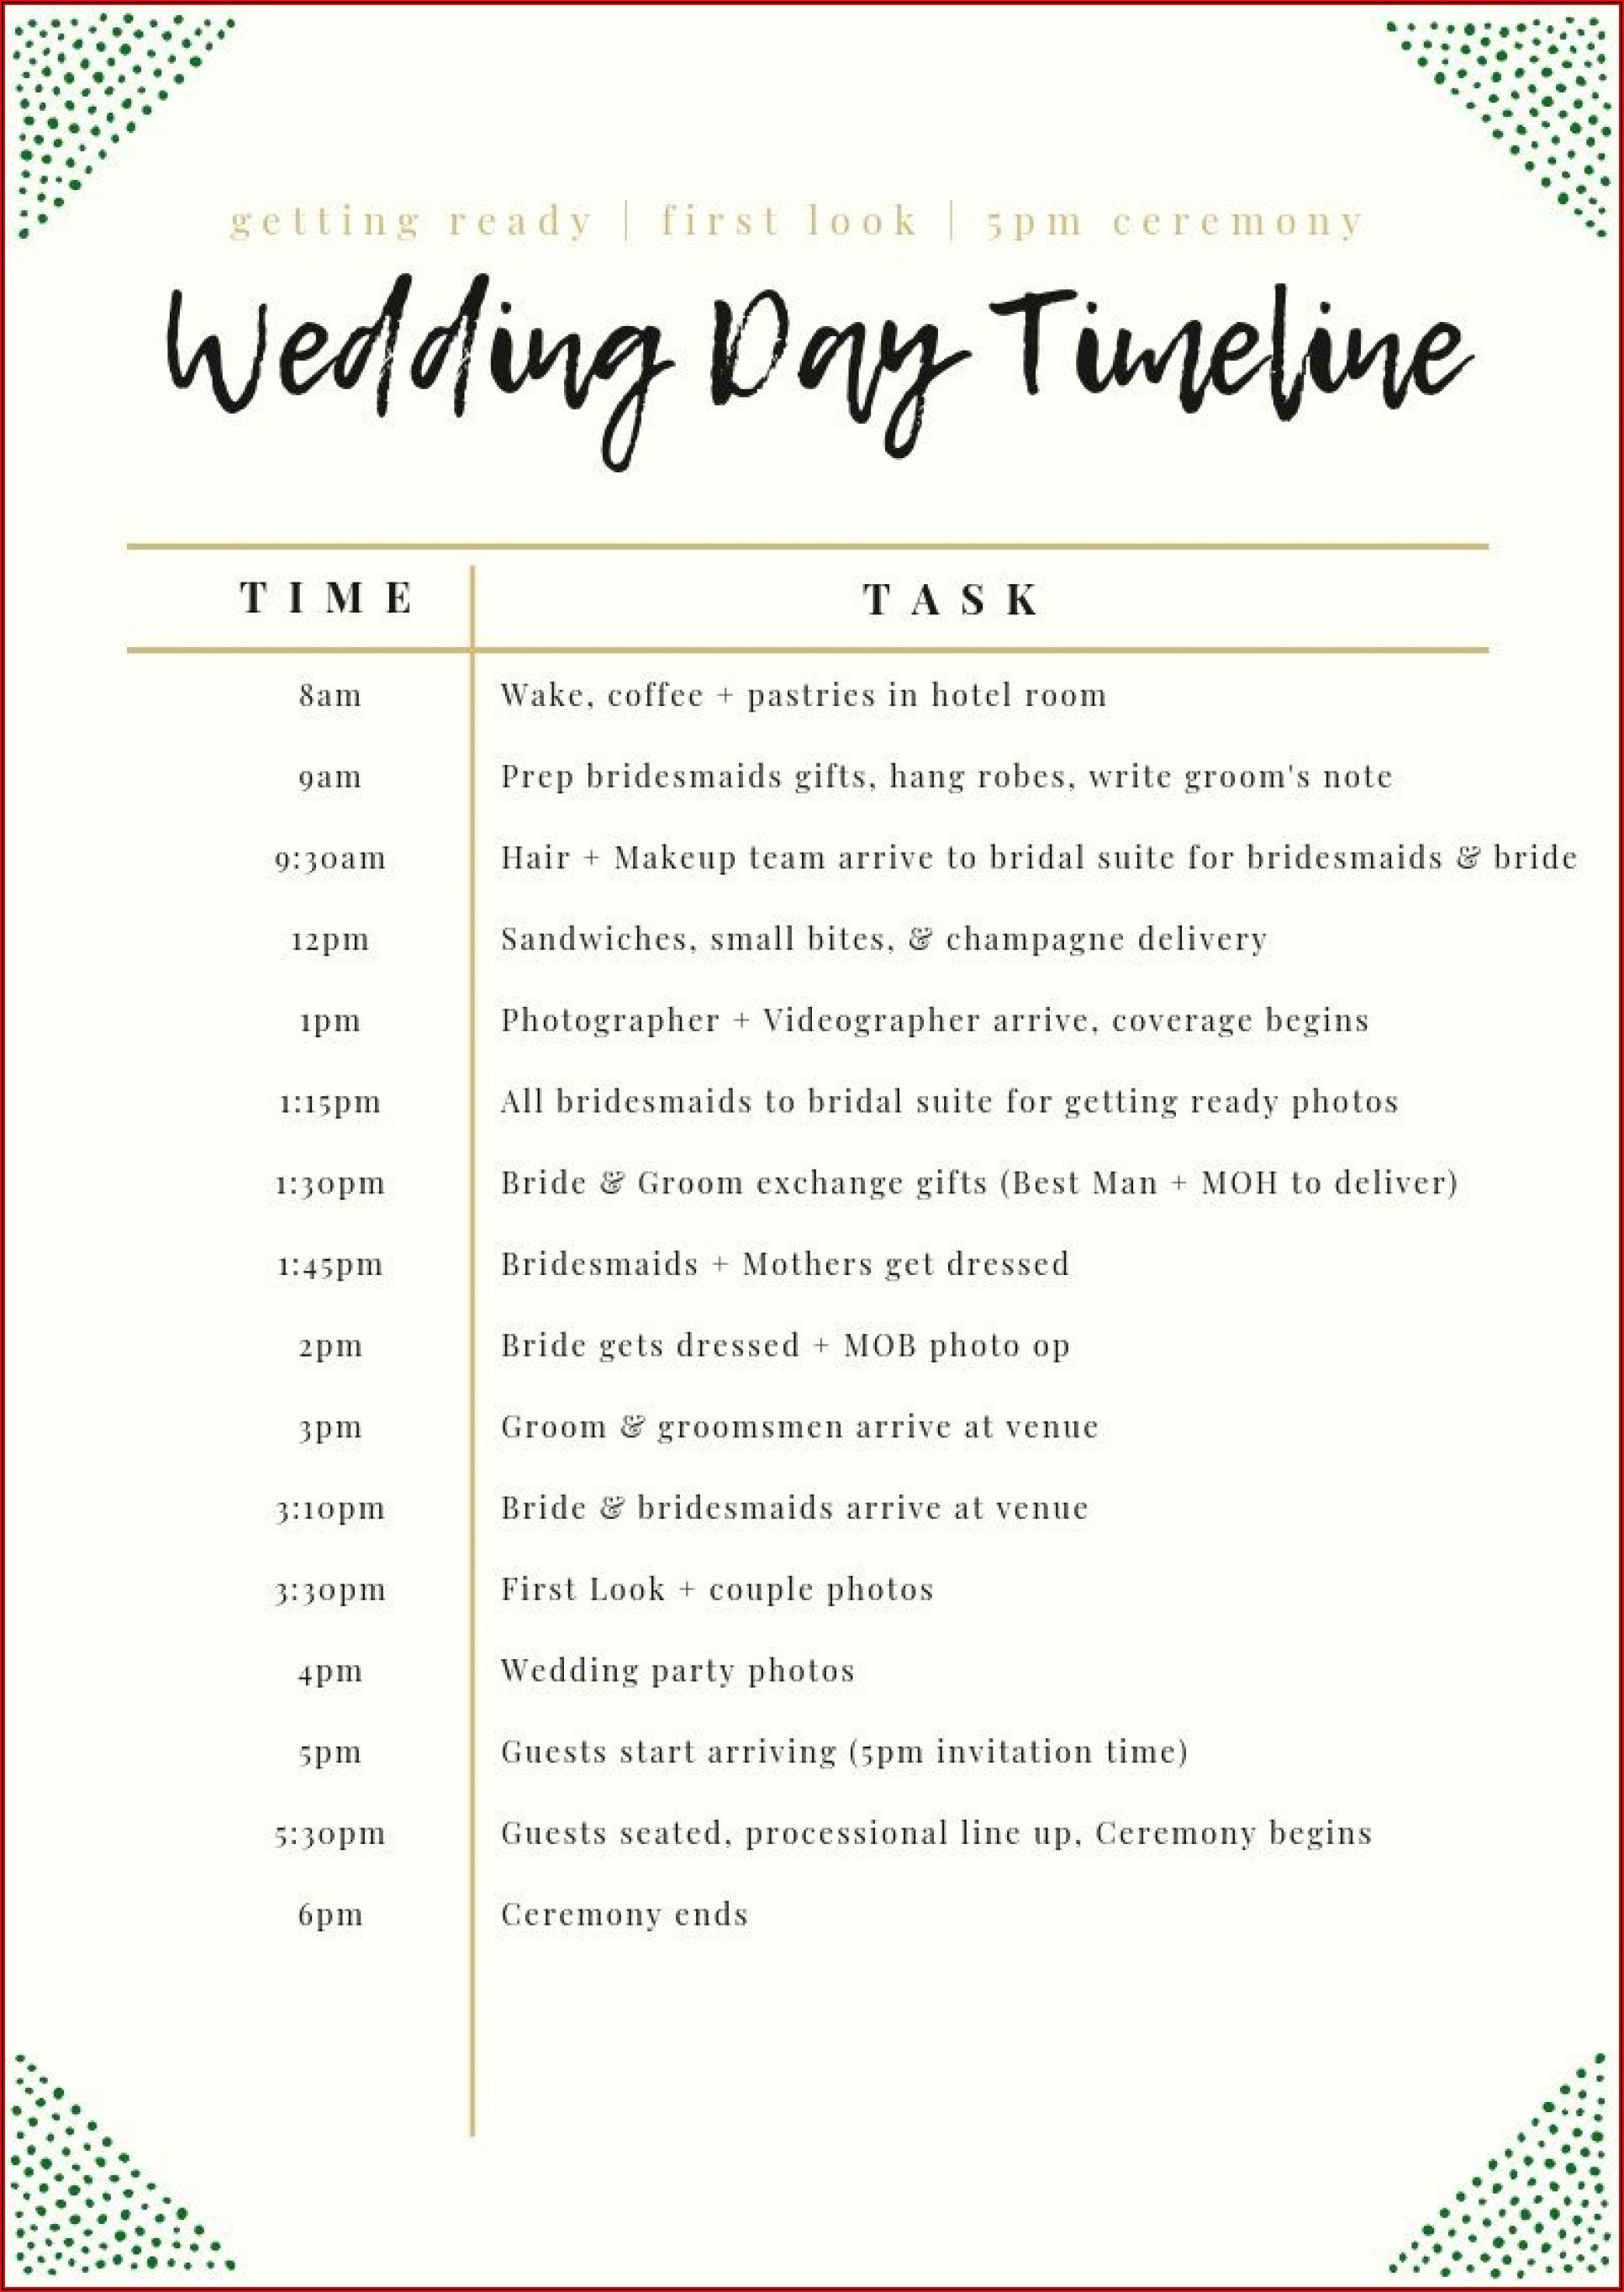 Wedding Day Timeline Template Excel Free